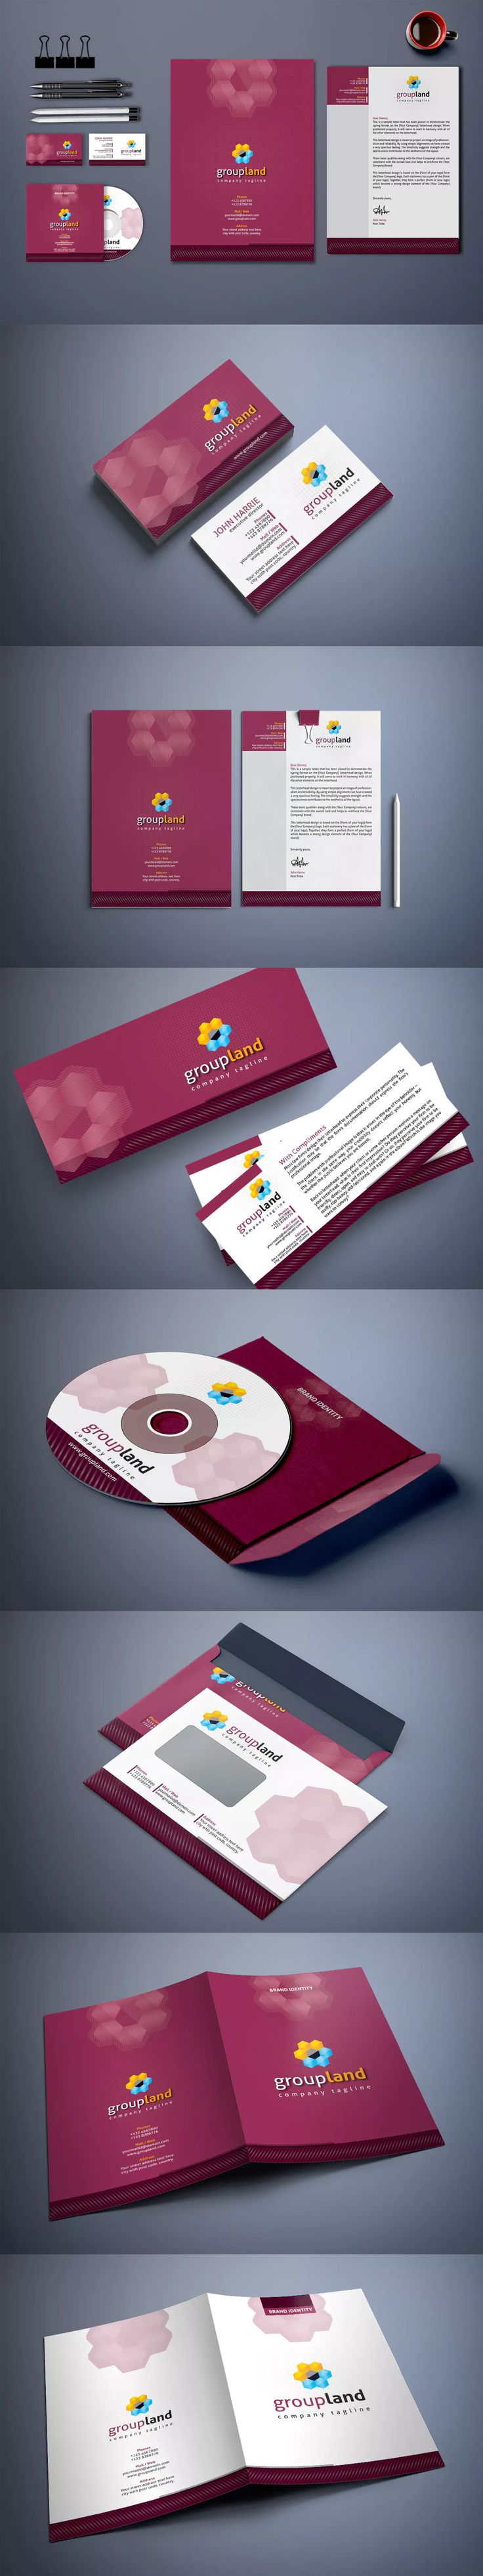 43 best corporate identity template images on pinterest